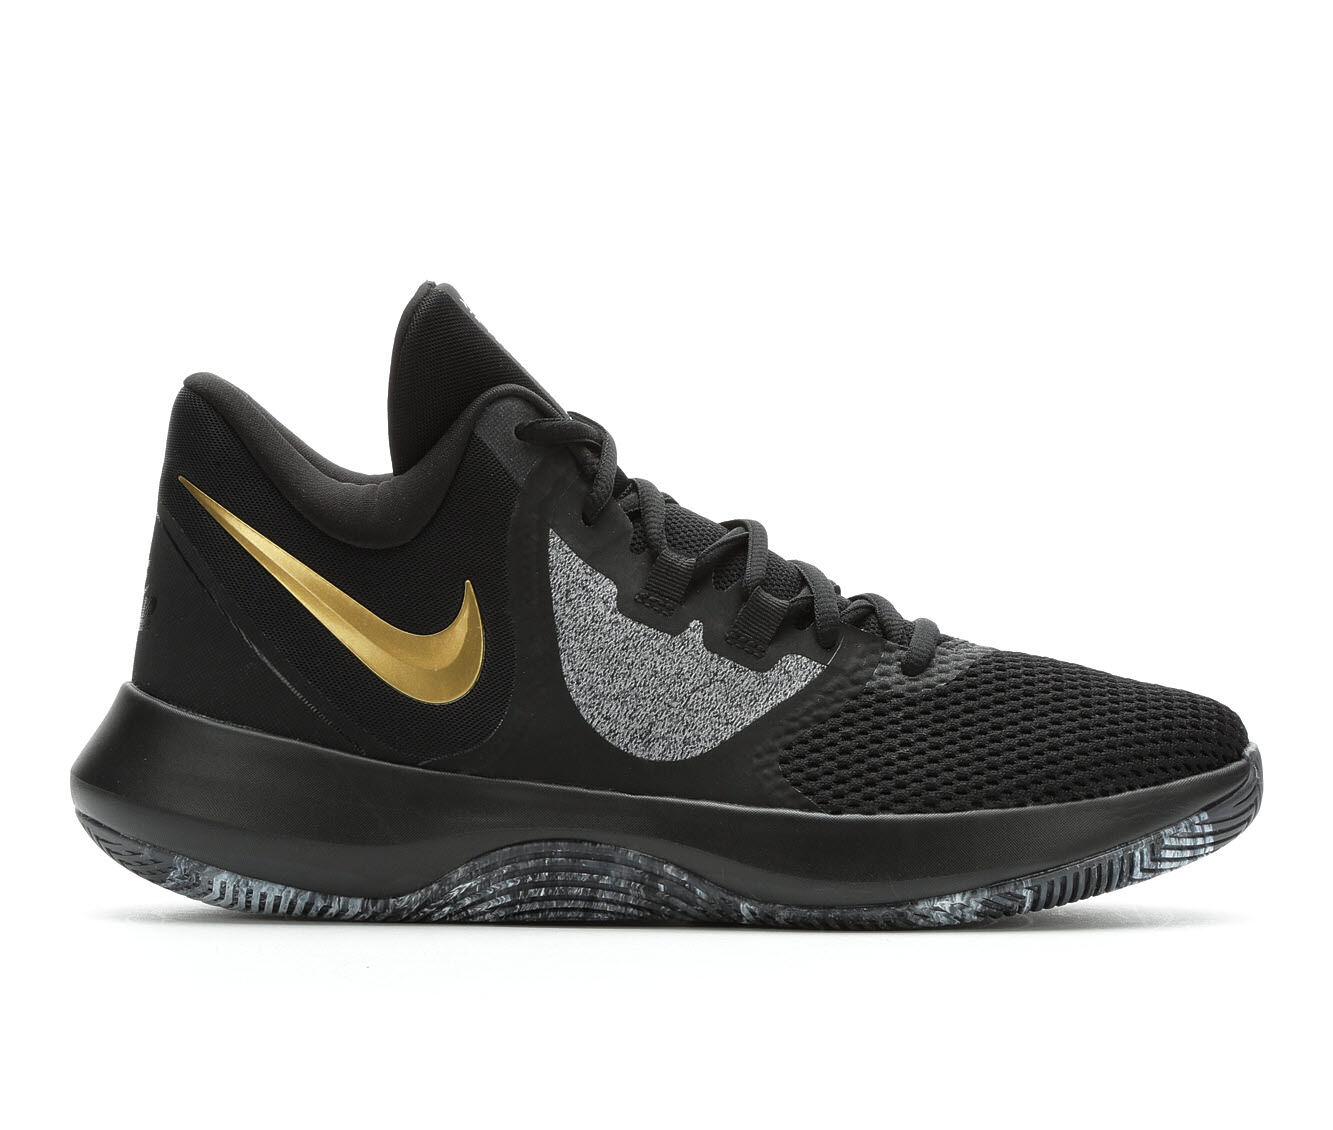 Men's Nike Air Precision II High Top Basketball Shoes Black/Gold/Grey